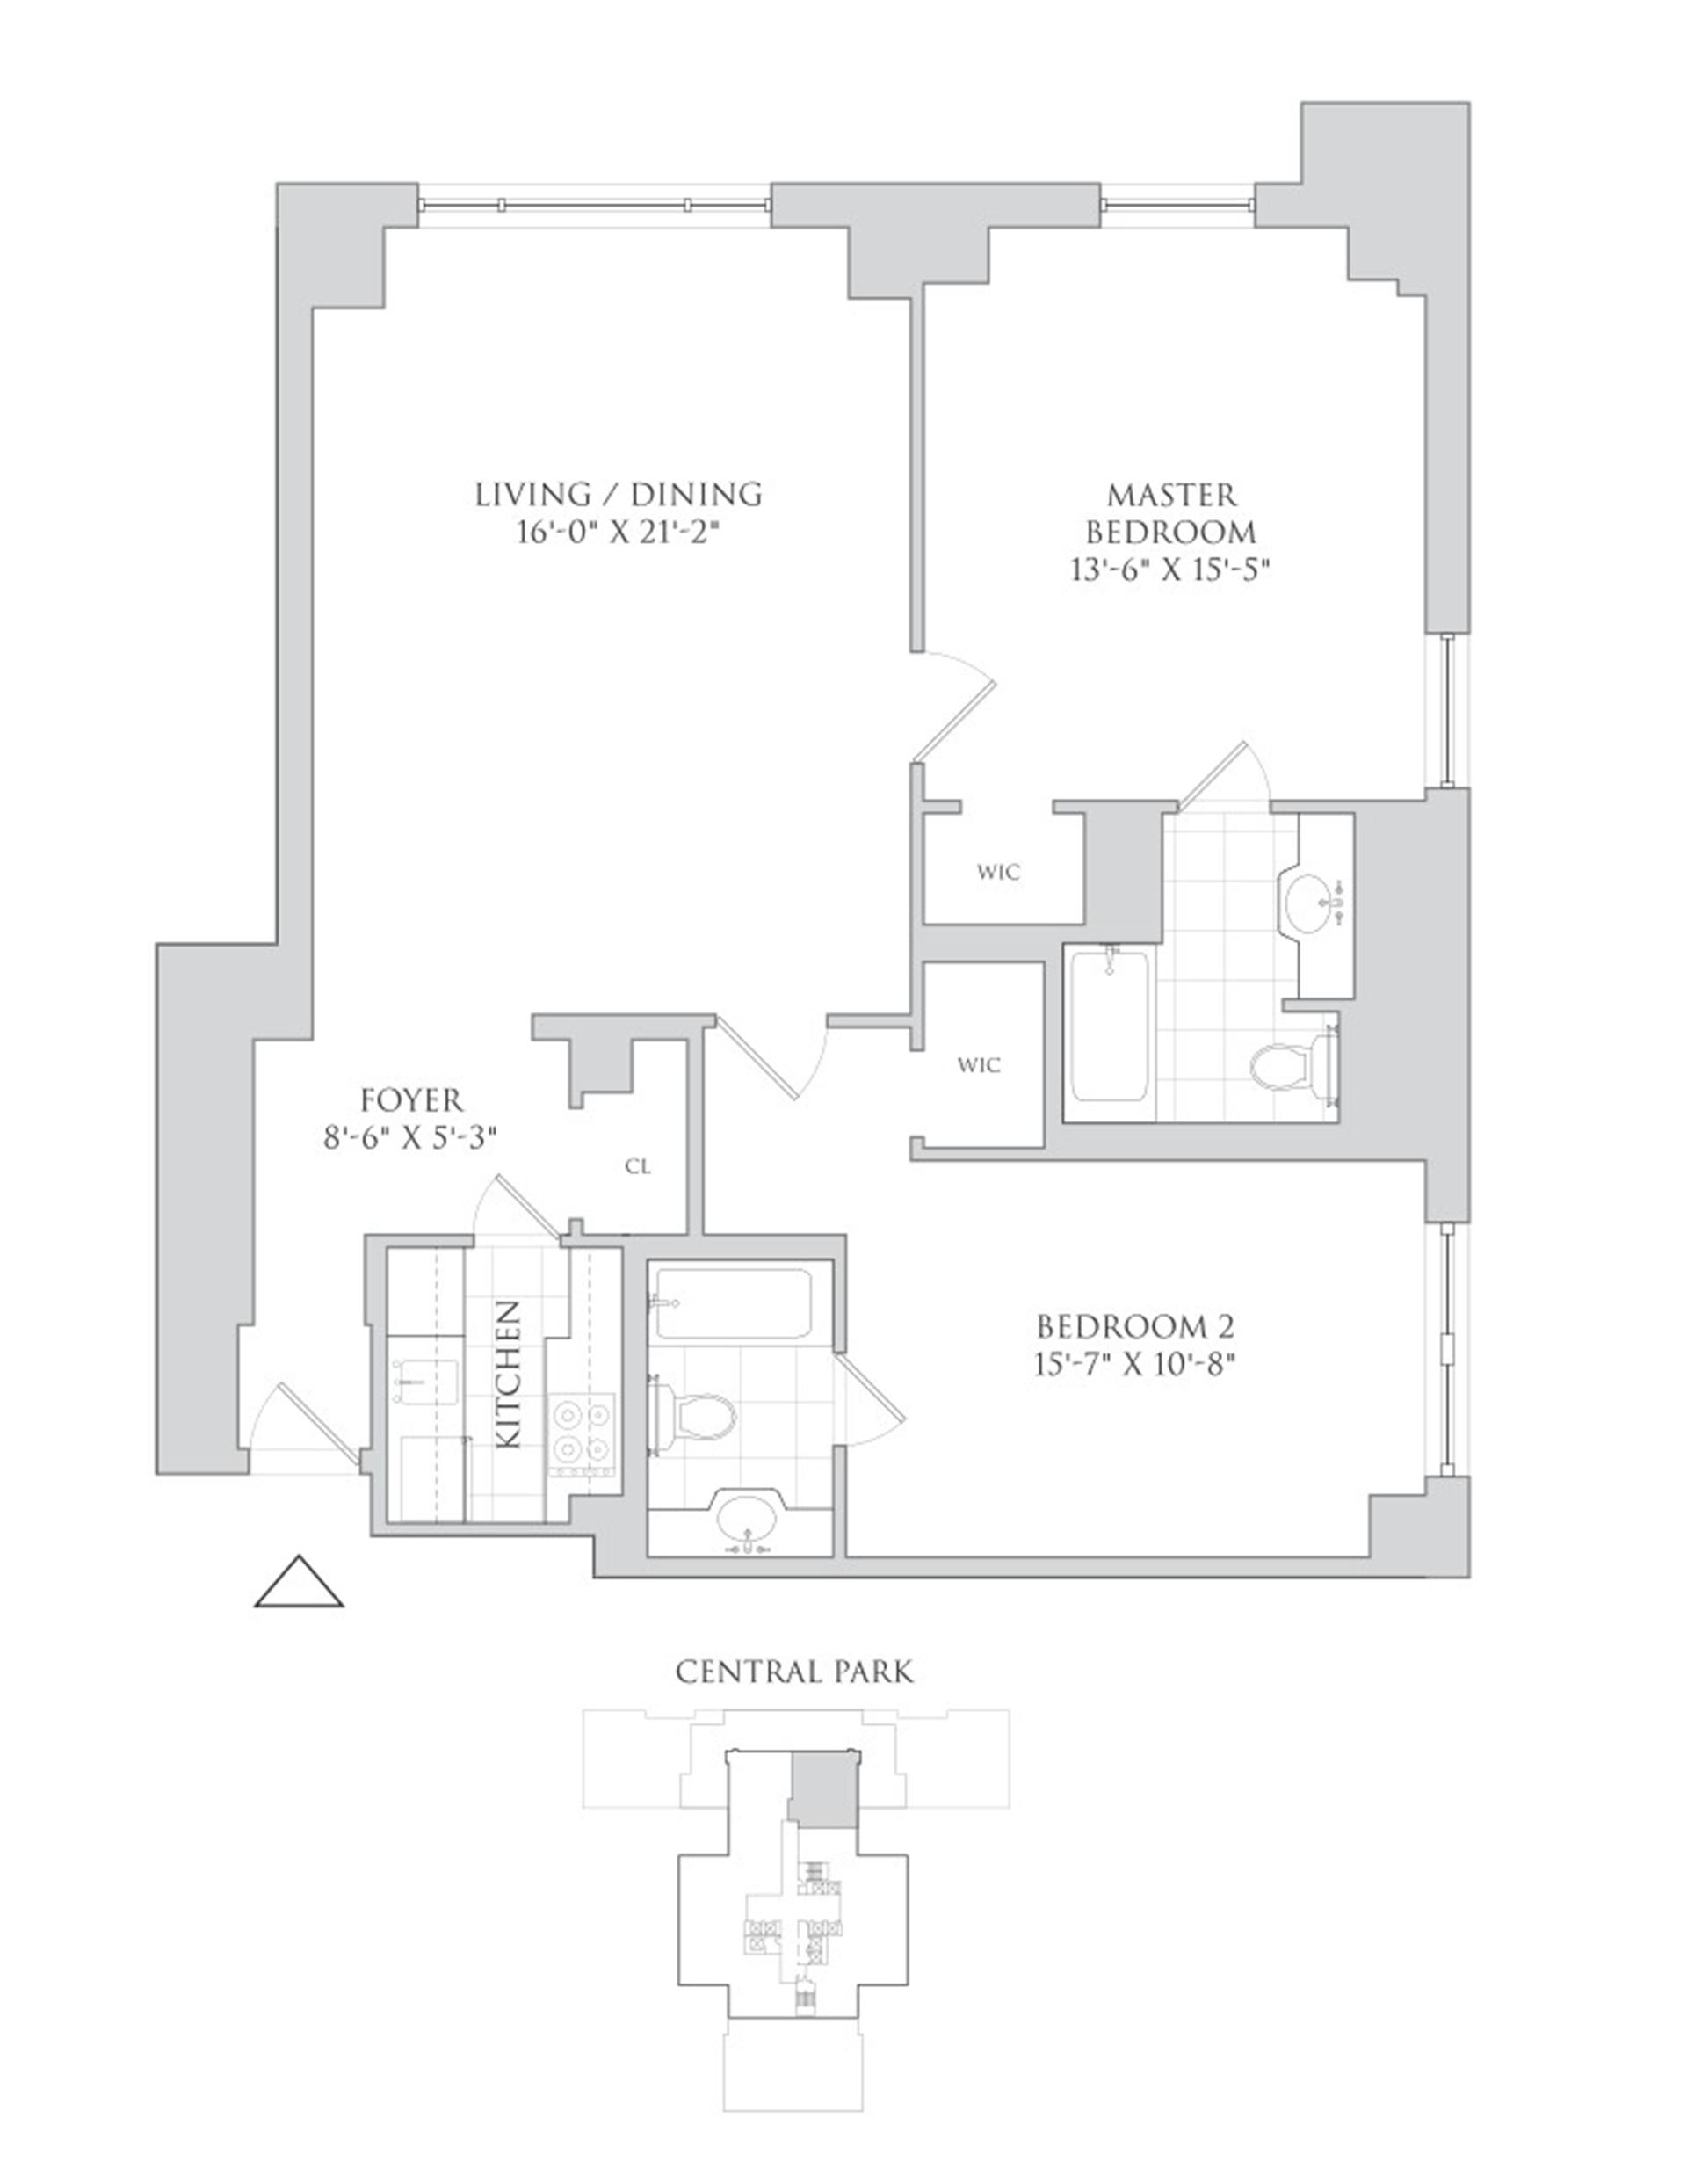 Floor plan of Essex House, 160 Central Park South, 2001 - Central Park South, New York